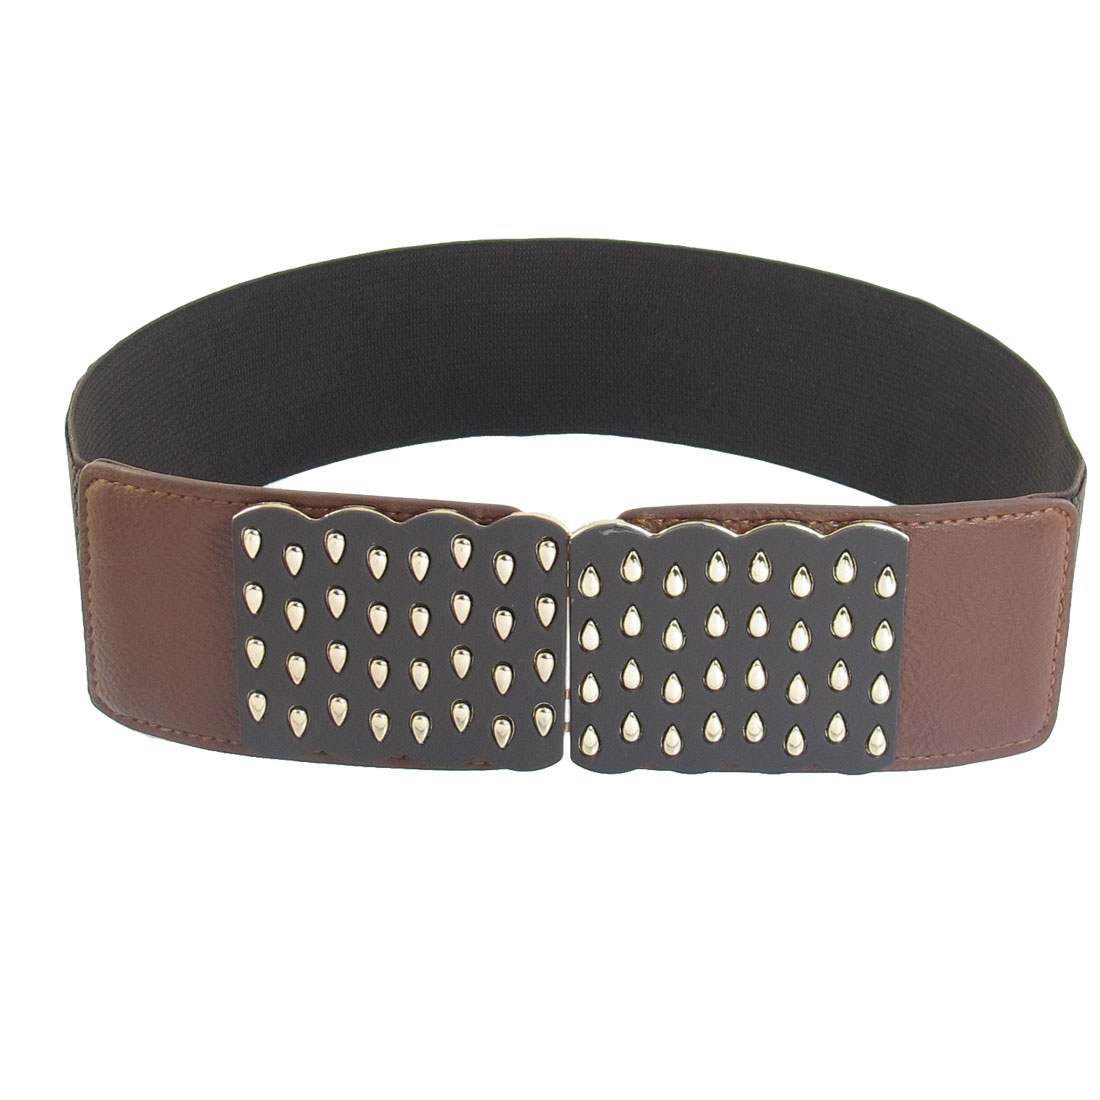 Dark Brown Textured Pattern Faux Leather Decor Stretchy Belt for Ladies